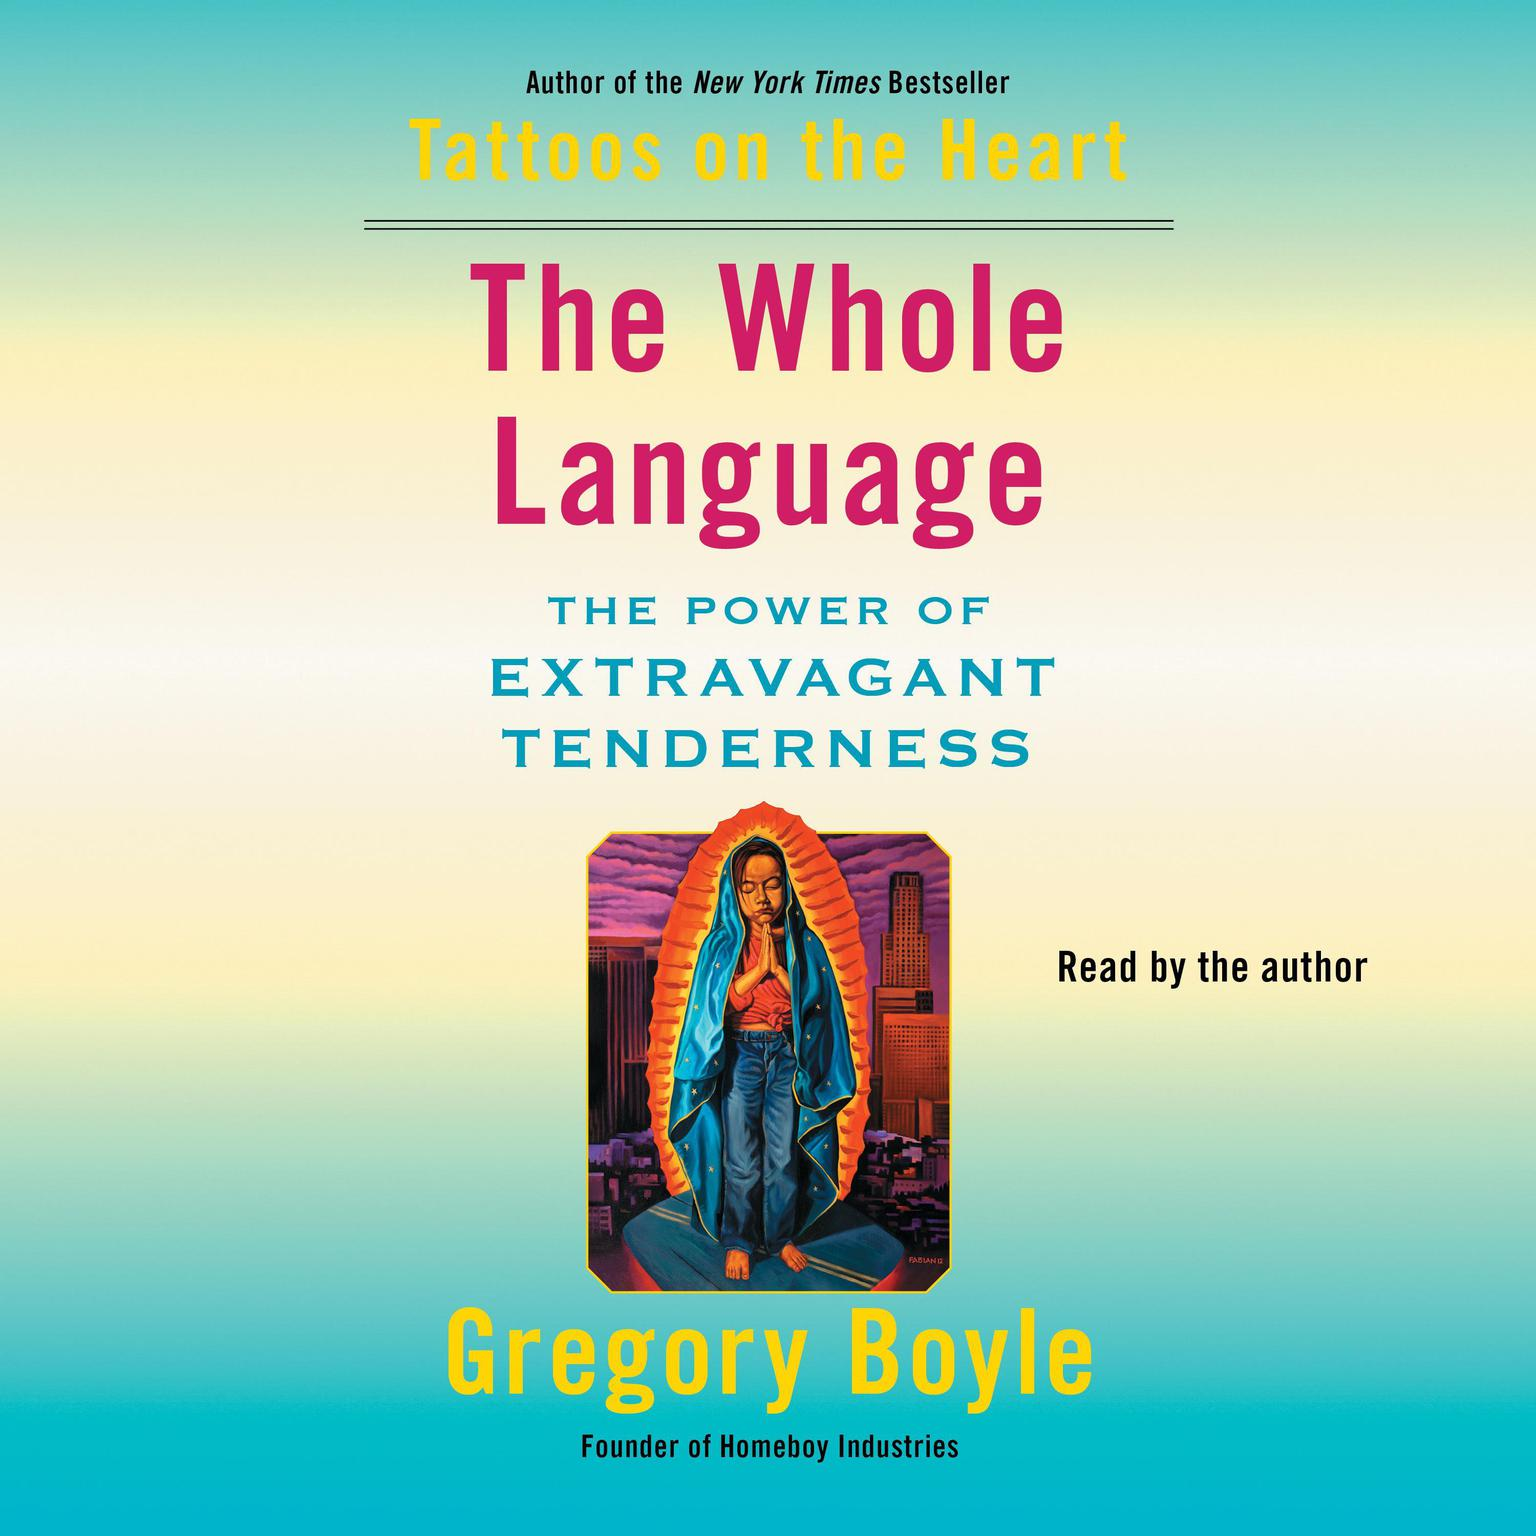 The Whole Language: The Power of Extravagant Tenderness Audiobook, by Gregory Boyle